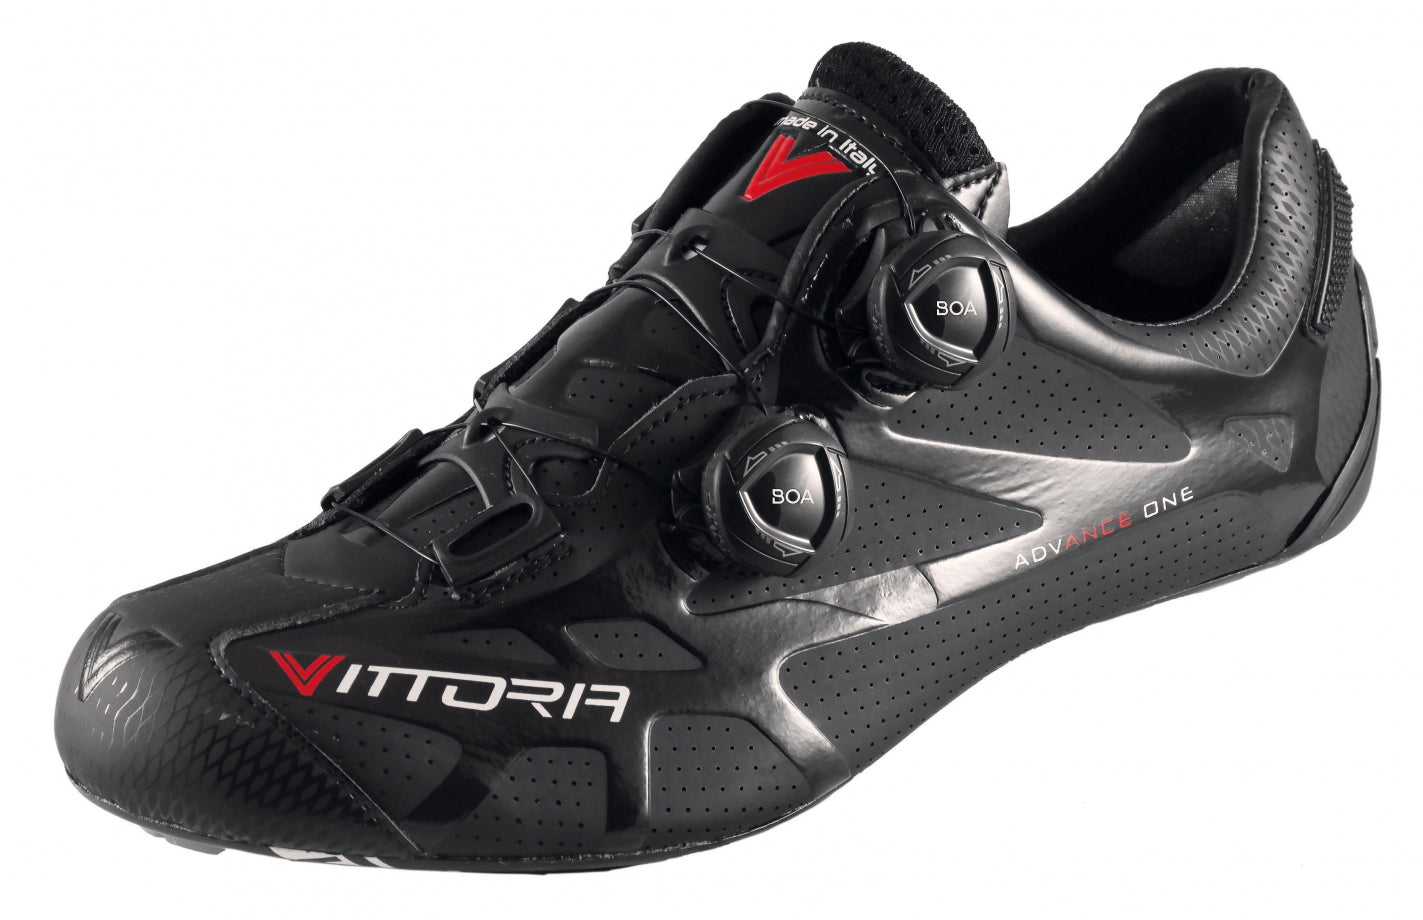 VITTORIA IKON PRO BOA CYCLING SHOES